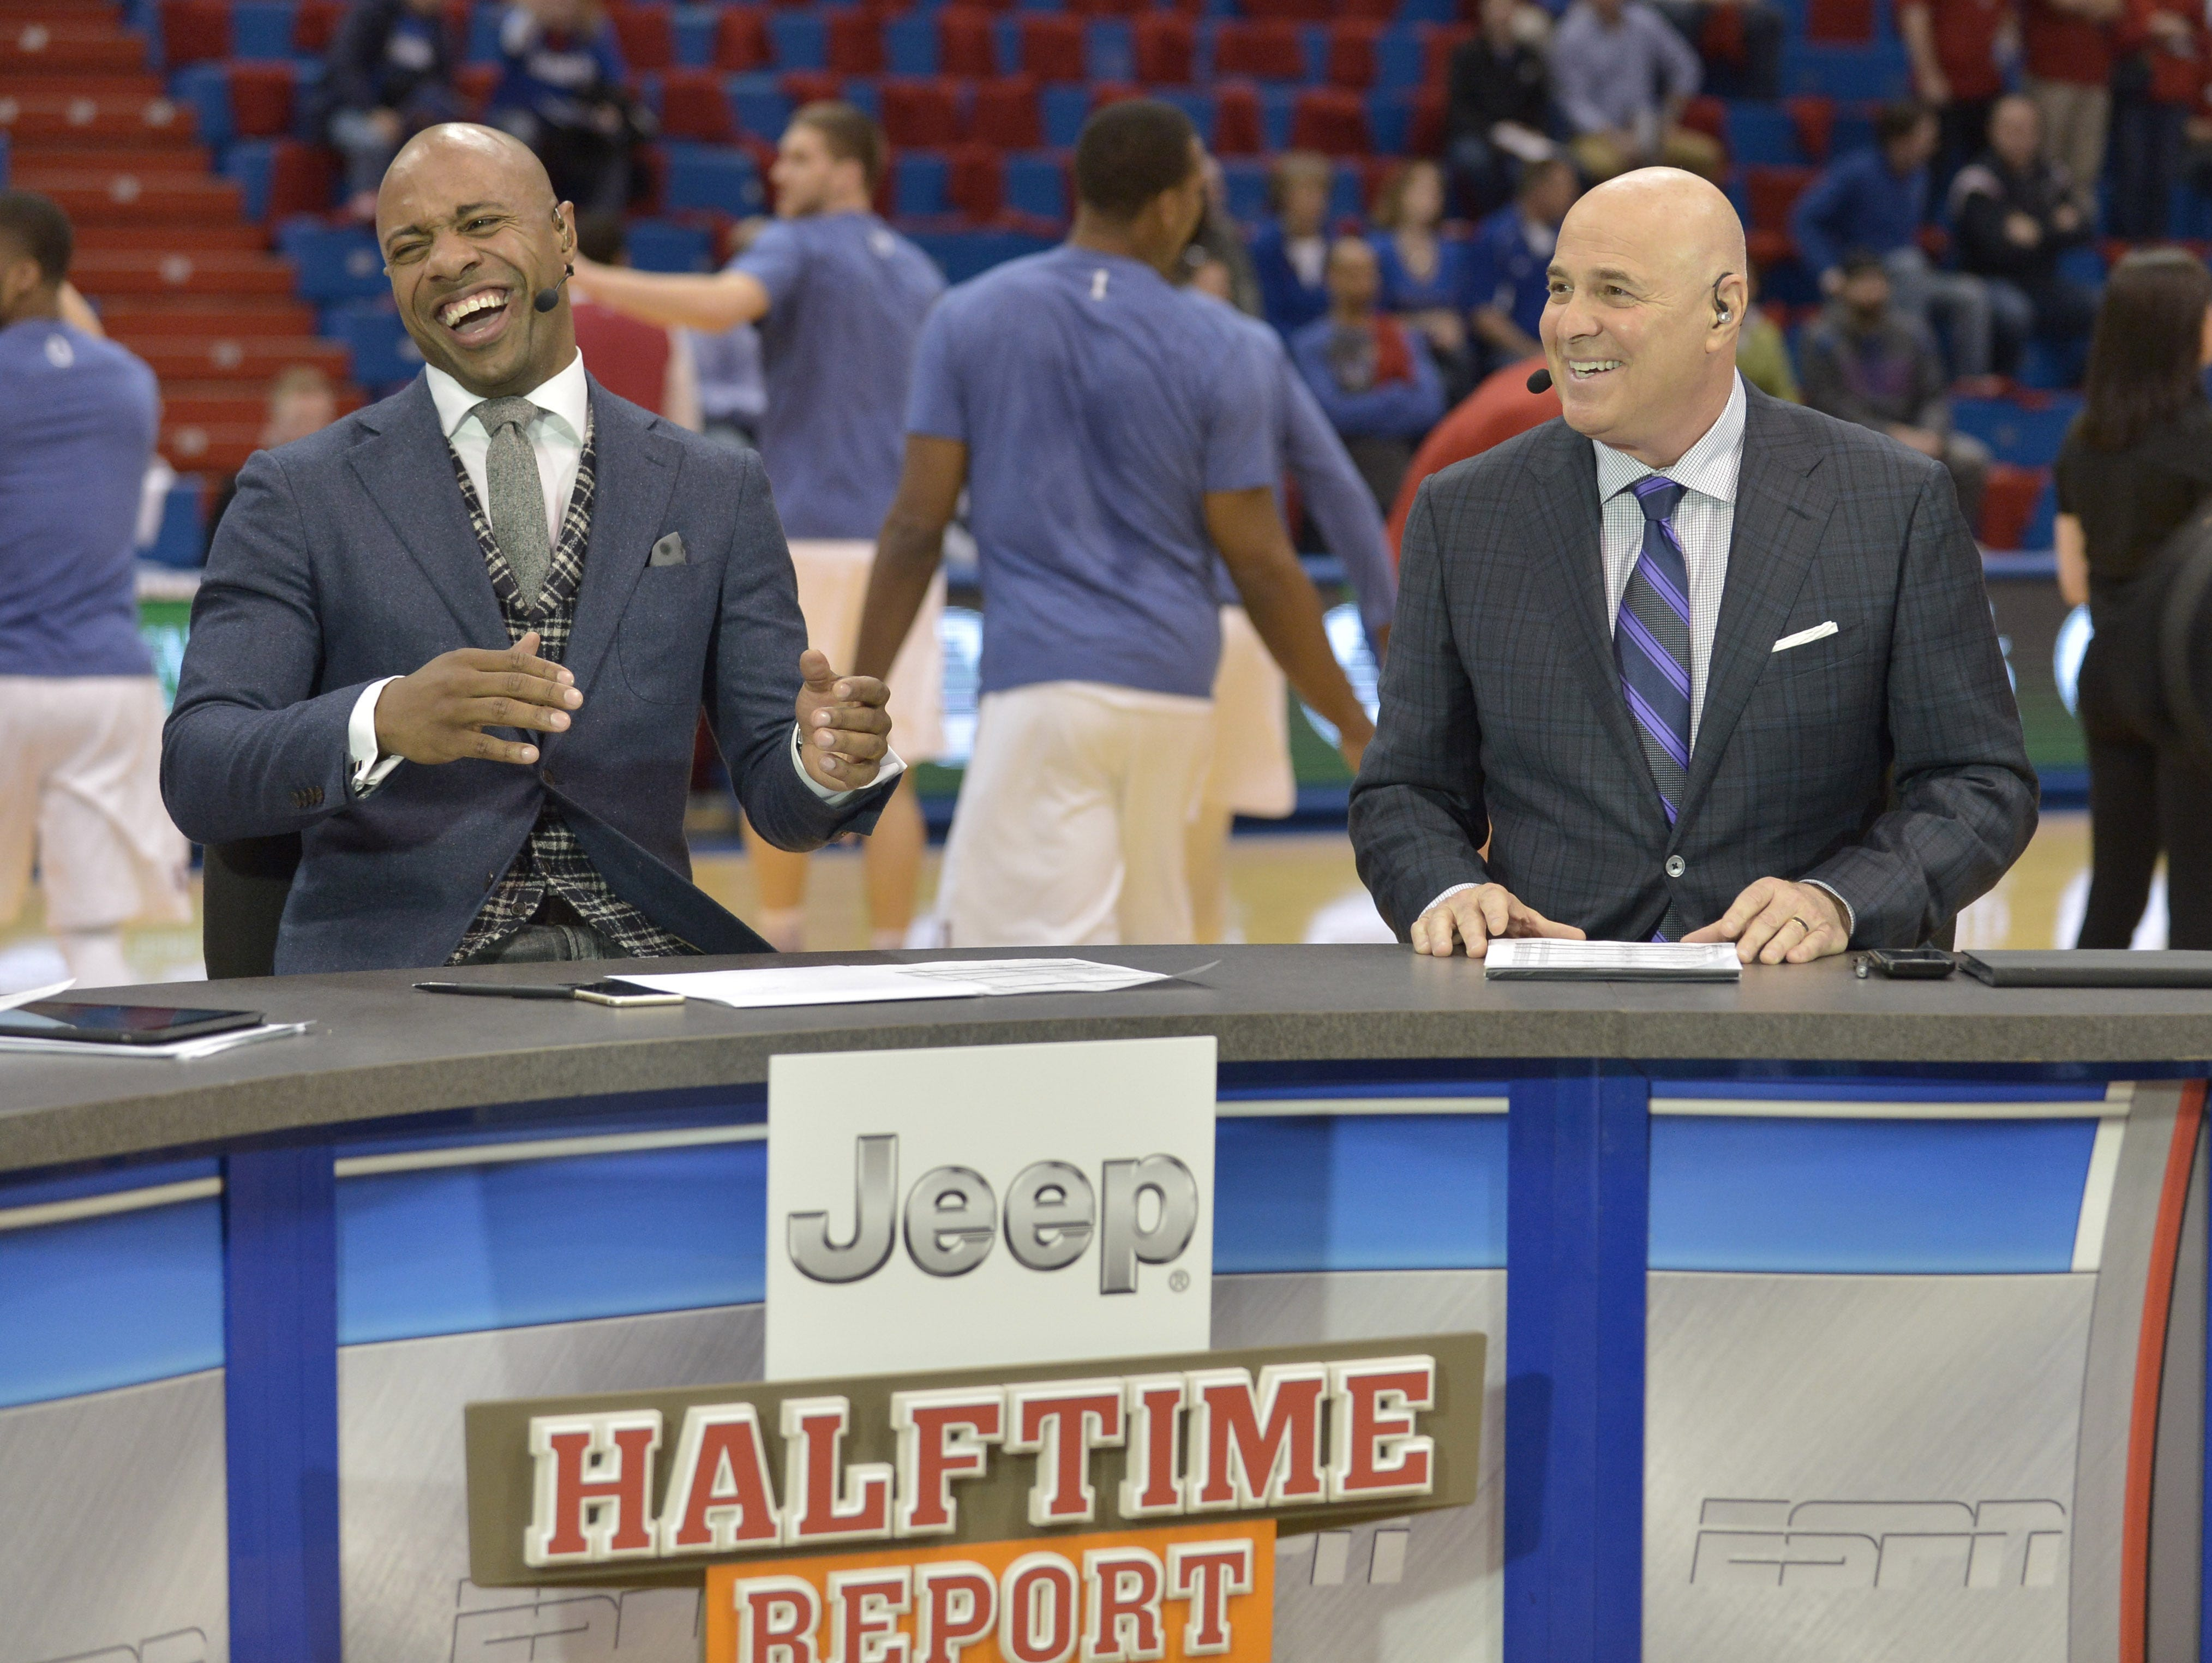 Jan 30, 2016; Lawrence, KS, USA; ESPN commentators Jay Williams and Seth Greenberg (left to right) talk before the game between the Kansas Jayhawks and Kentucky Wildcats at Allen Fieldhouse. Mandatory Credit: Denny Medley-USA TODAY Sports